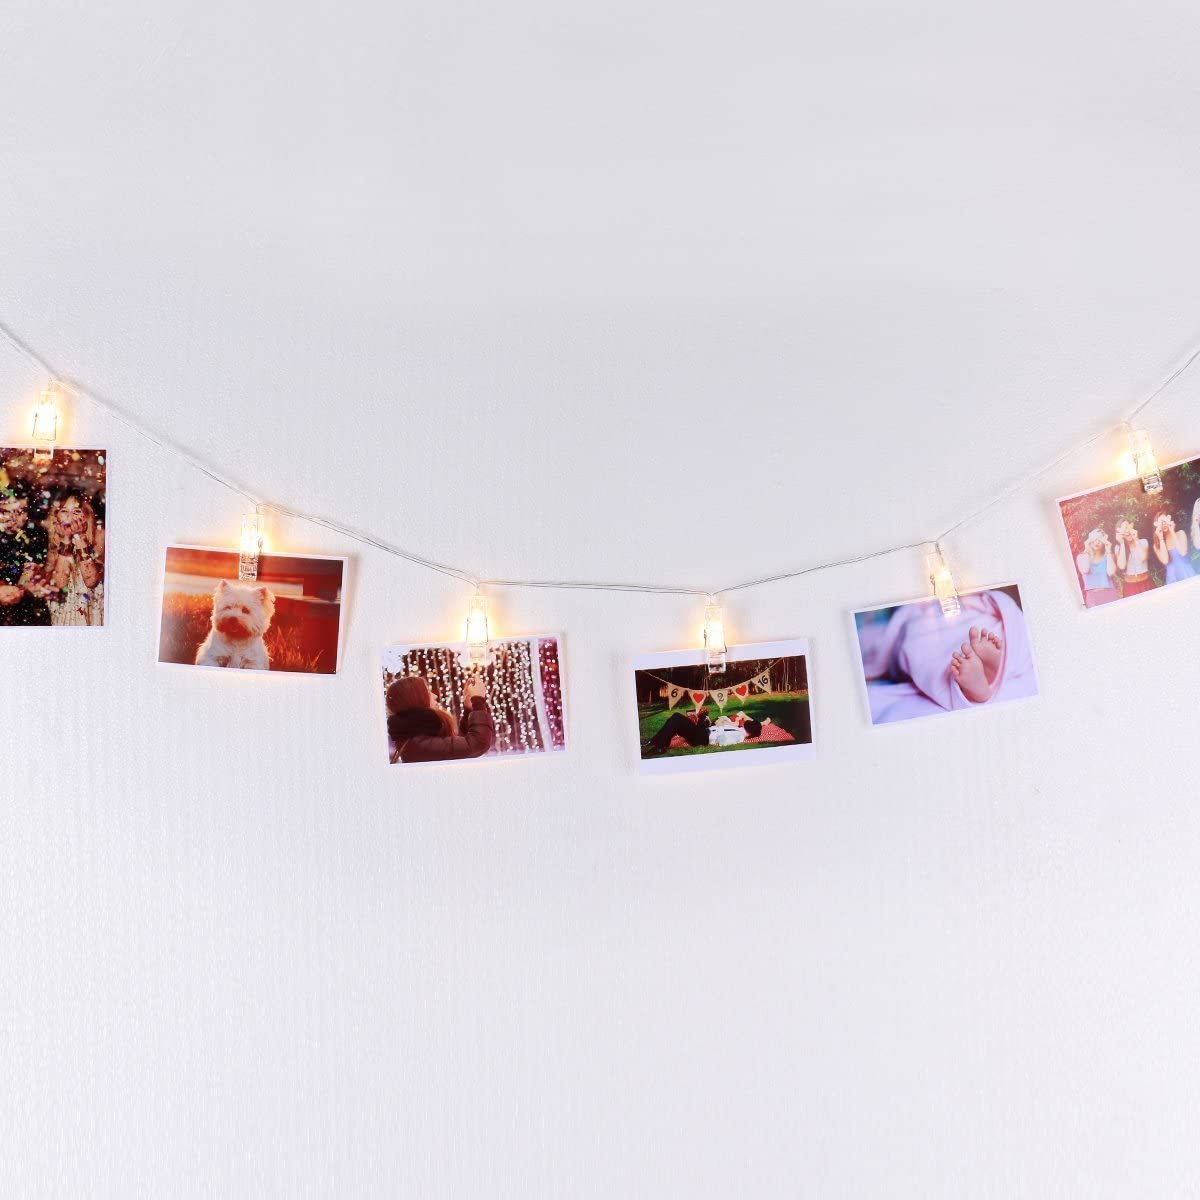 LED Photo Display String Lights with Timer Automatically ON/Off Warm White 15ft/4.5m for Hanging Pictures Photos Cards and Notes USB Powered, Photo Banner, Wall Decor Essential by Mojocraft